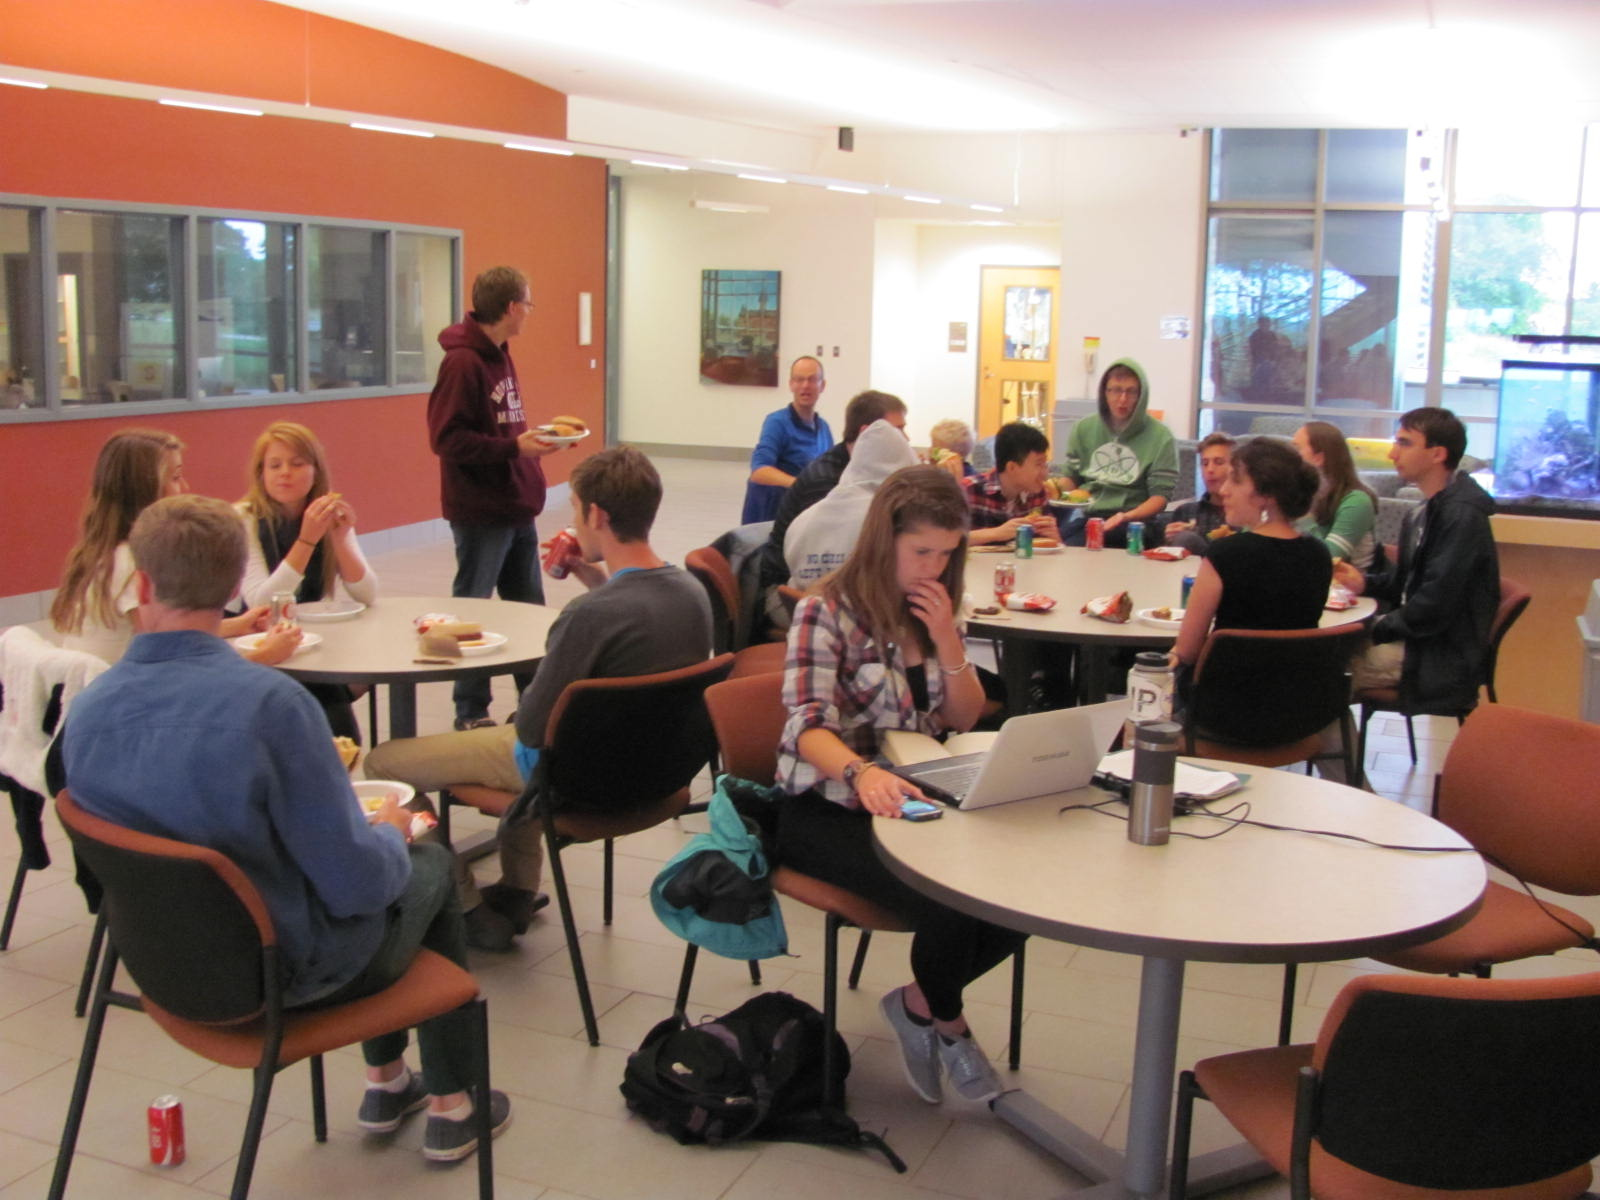 A cool fall day brings the picnic indoors to the comfort of the science building